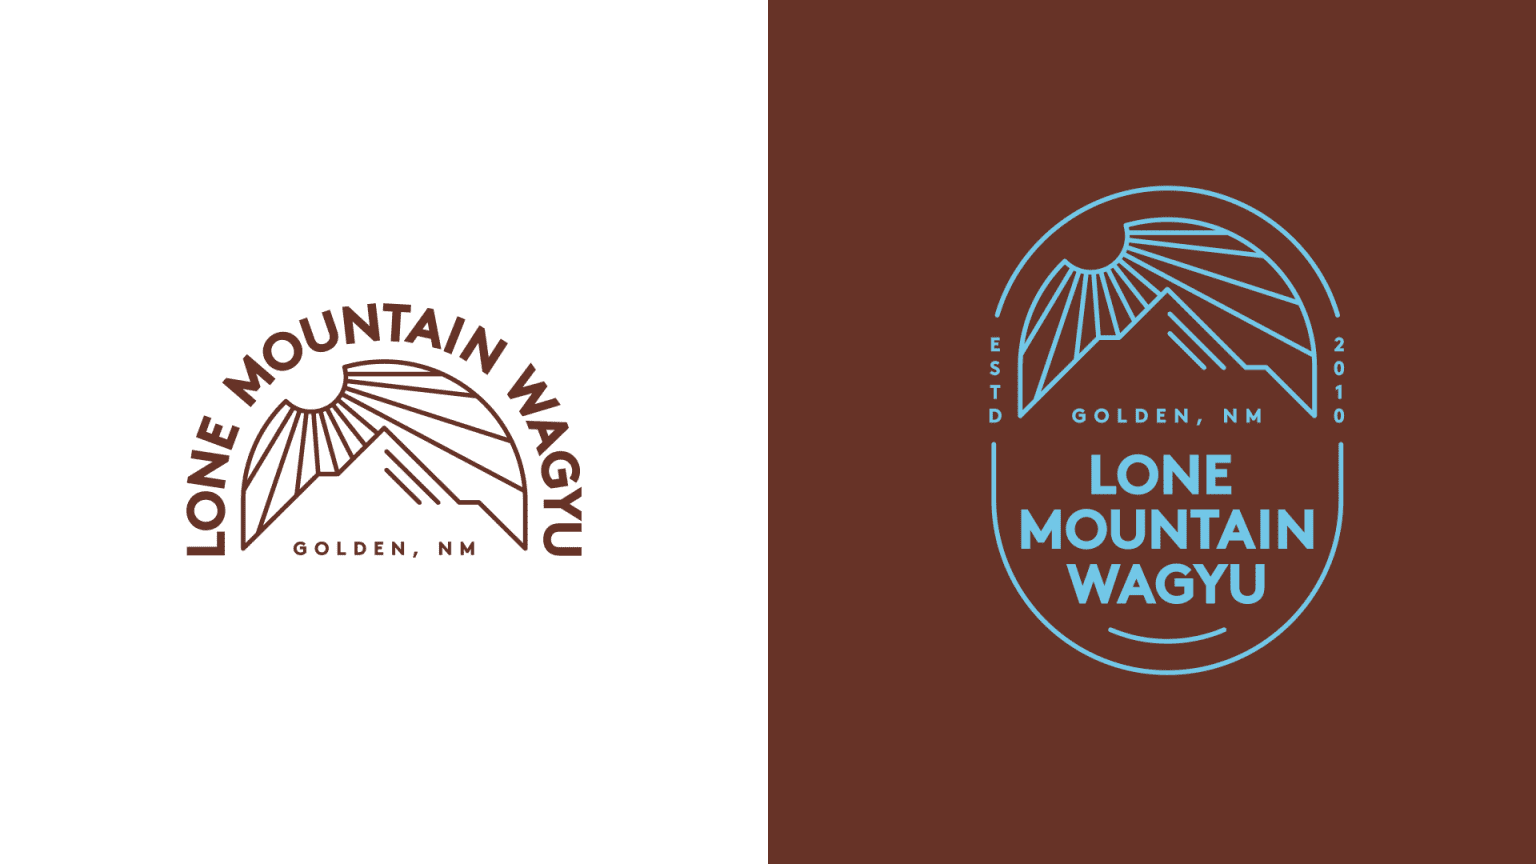 Lone Mountain Wagyu — Eat Life to the Fullest